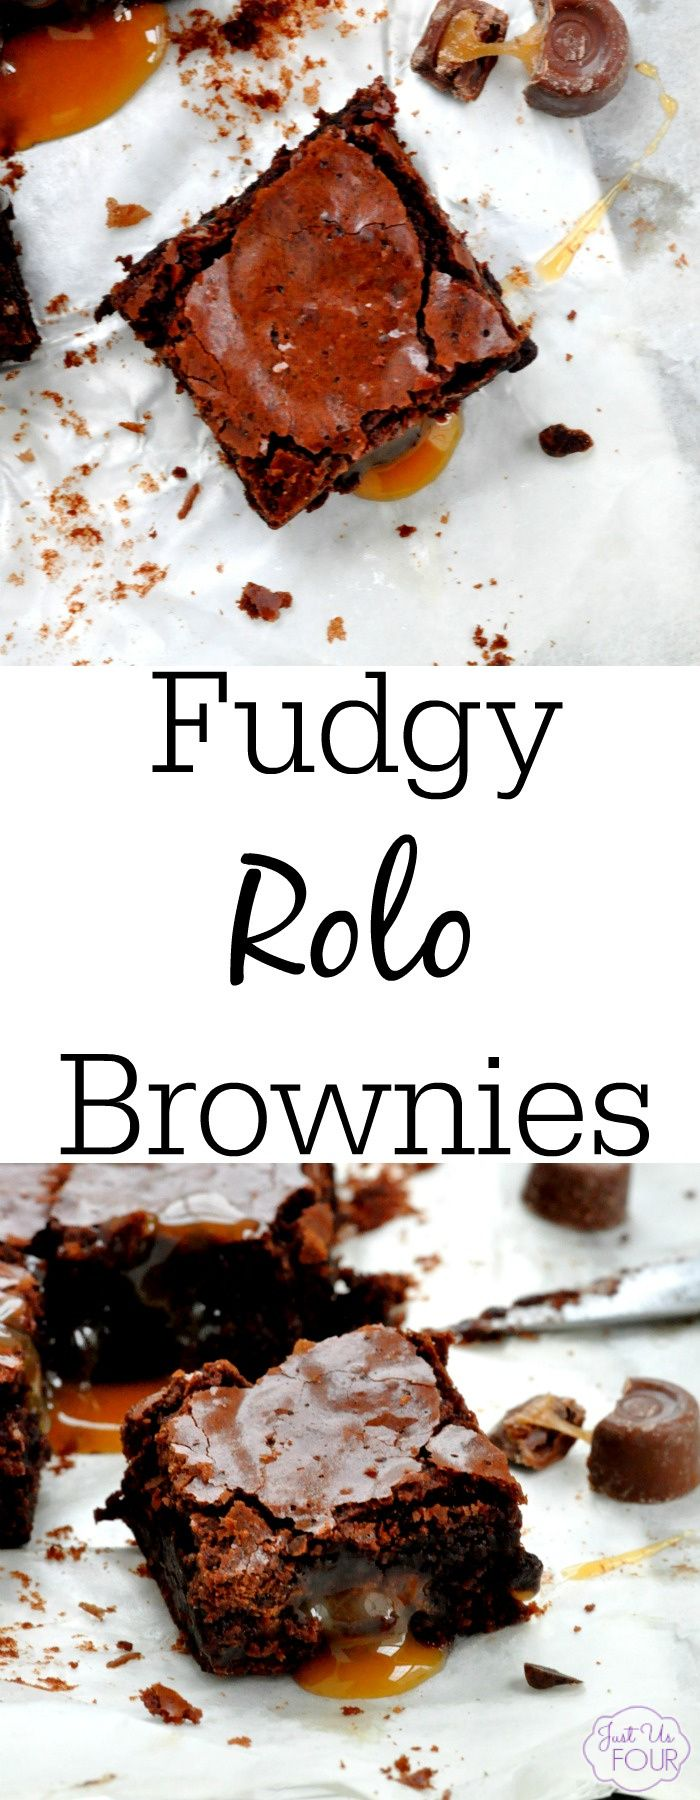 Fudgy Rolo Brownies